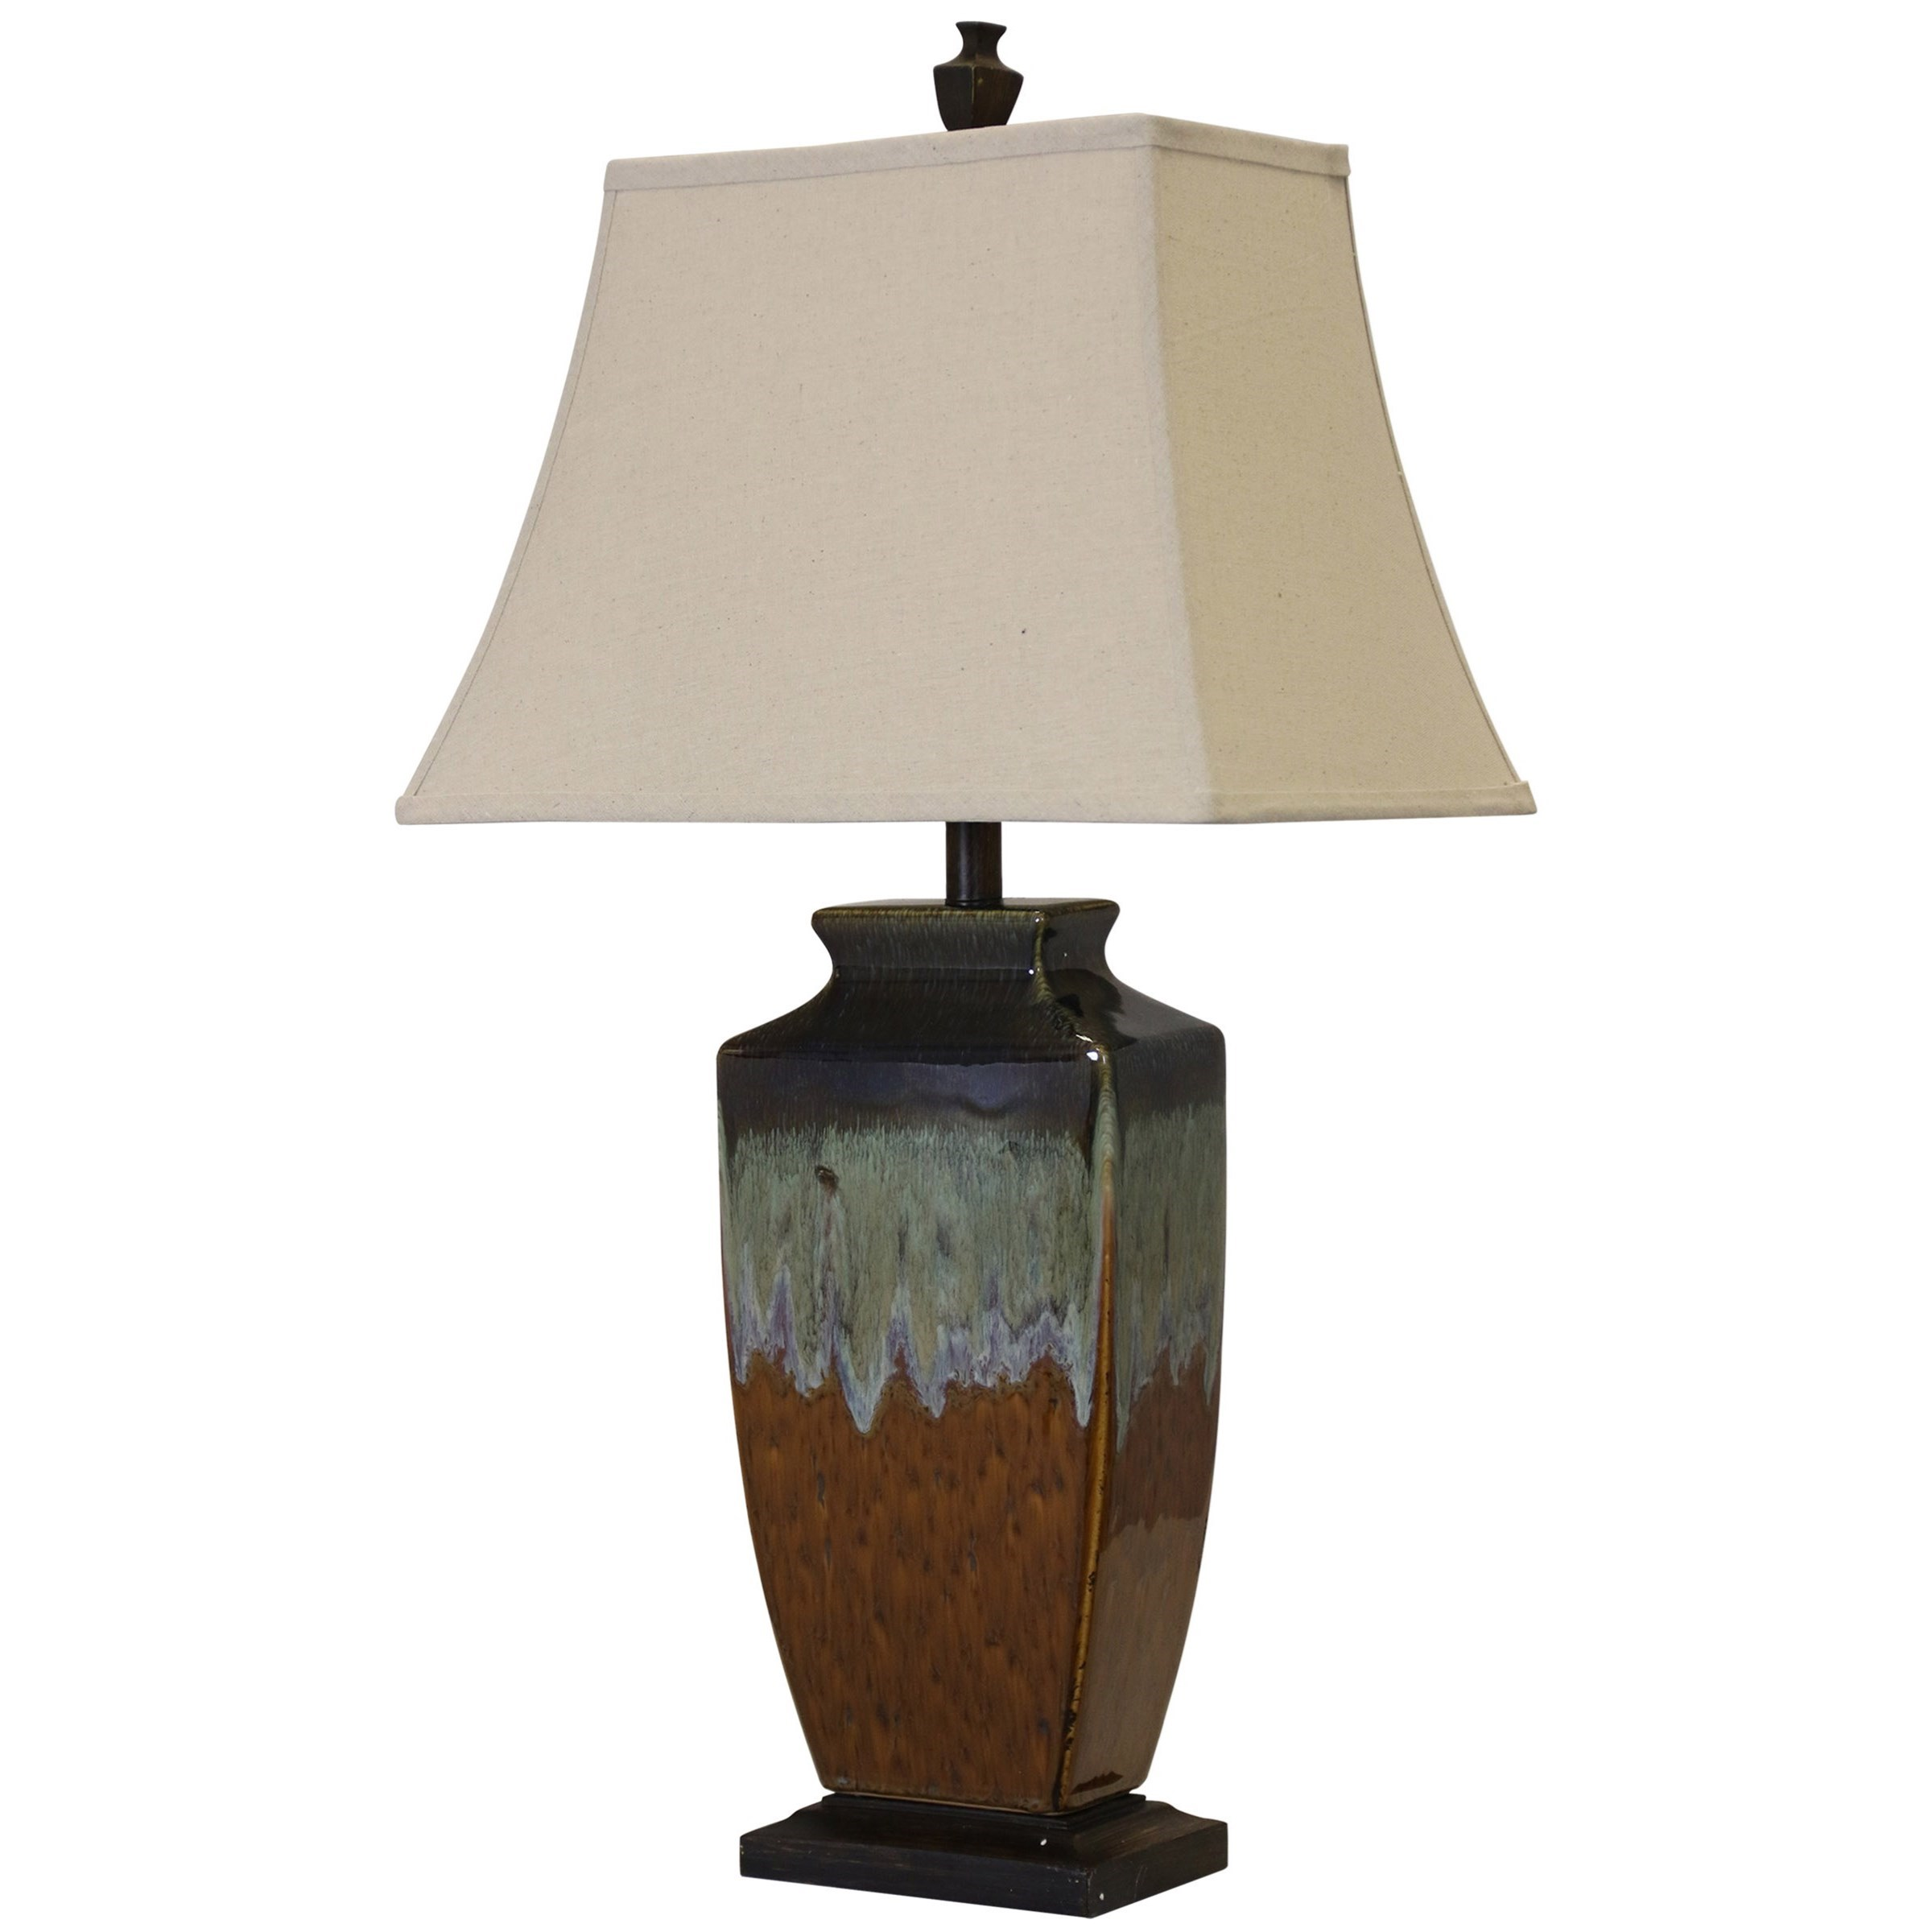 Lamps Reactive Glaze Ceramic Lamp by StyleCraft at Dream Home Interiors